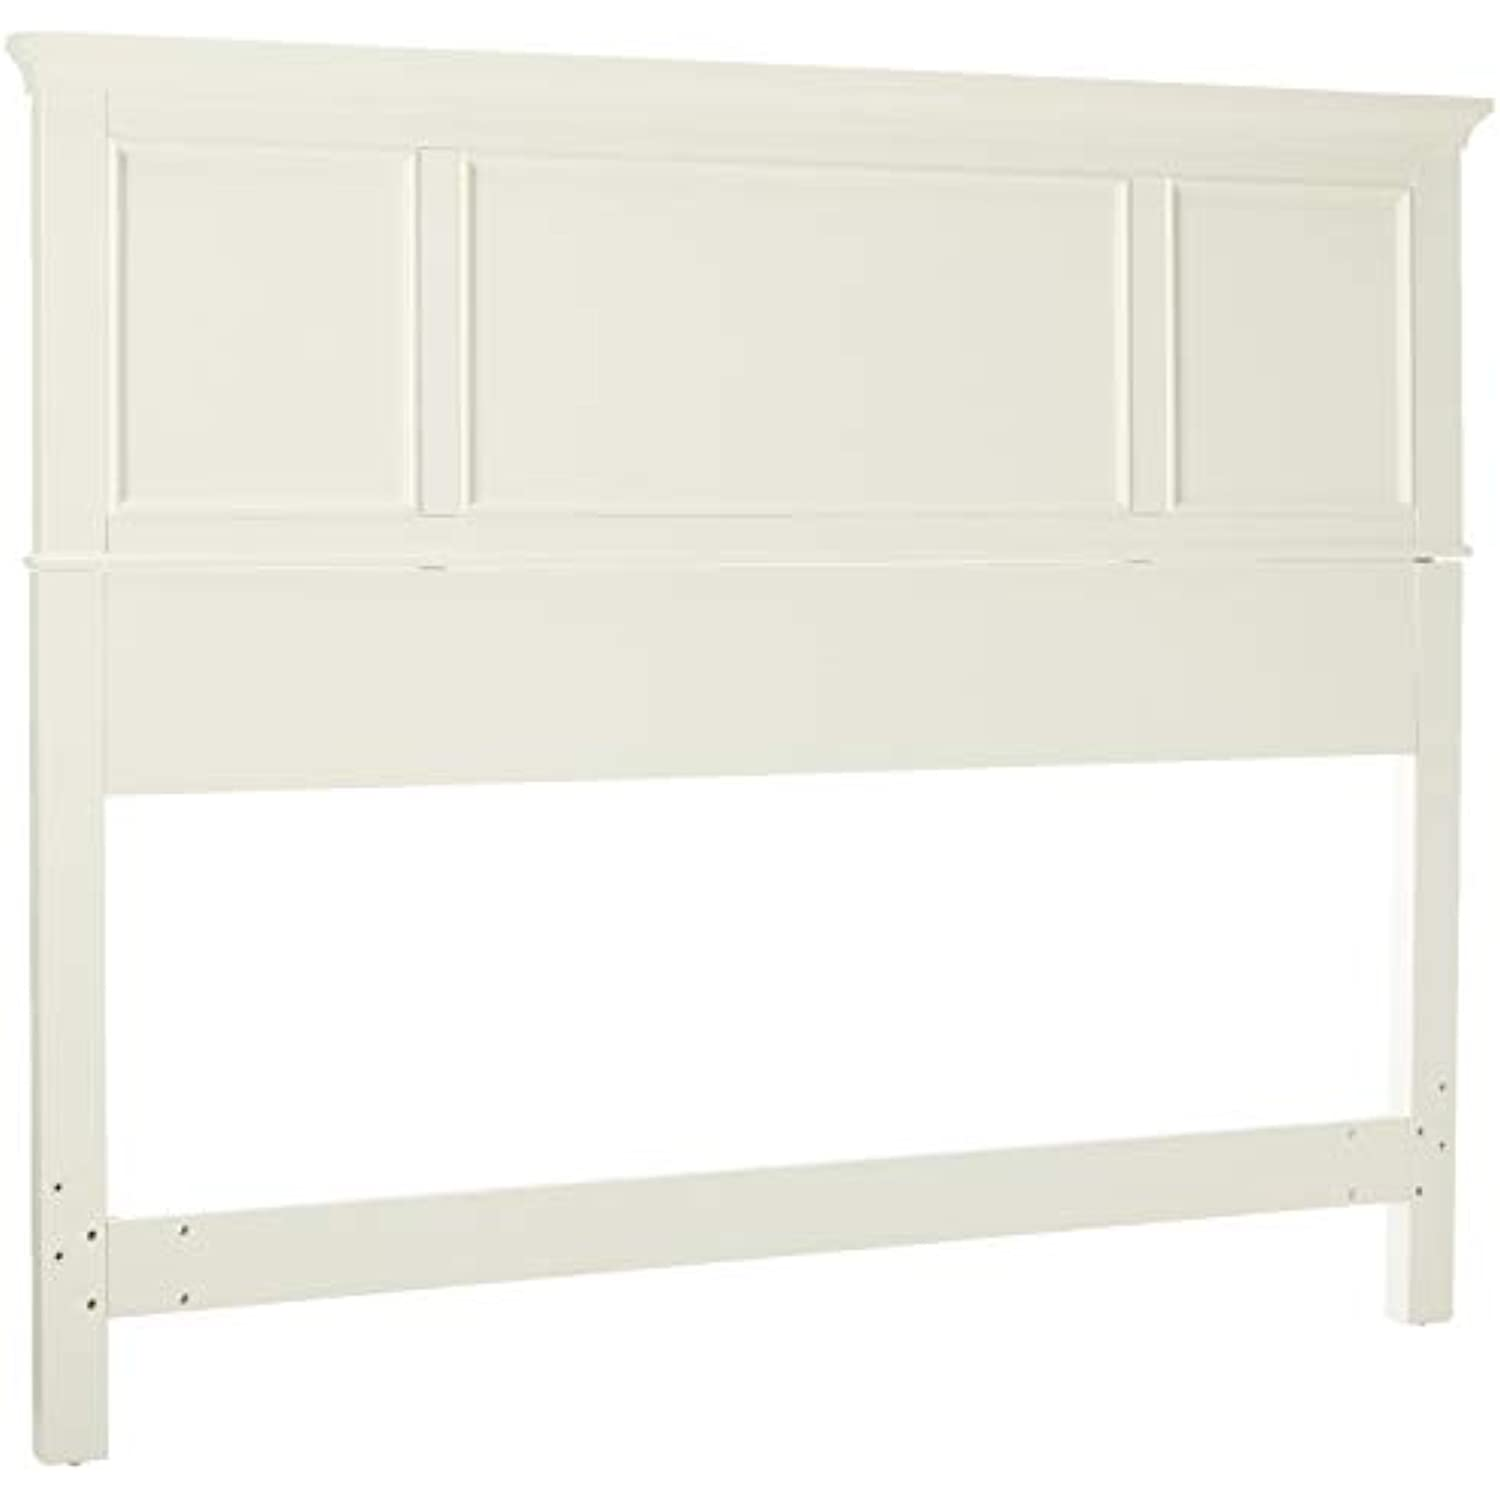 Home Styles Naples White Queen Headboard with Mahogany Wood Solids, Brush Stroke Finish, Raised Panel Design, and Rich White Finish